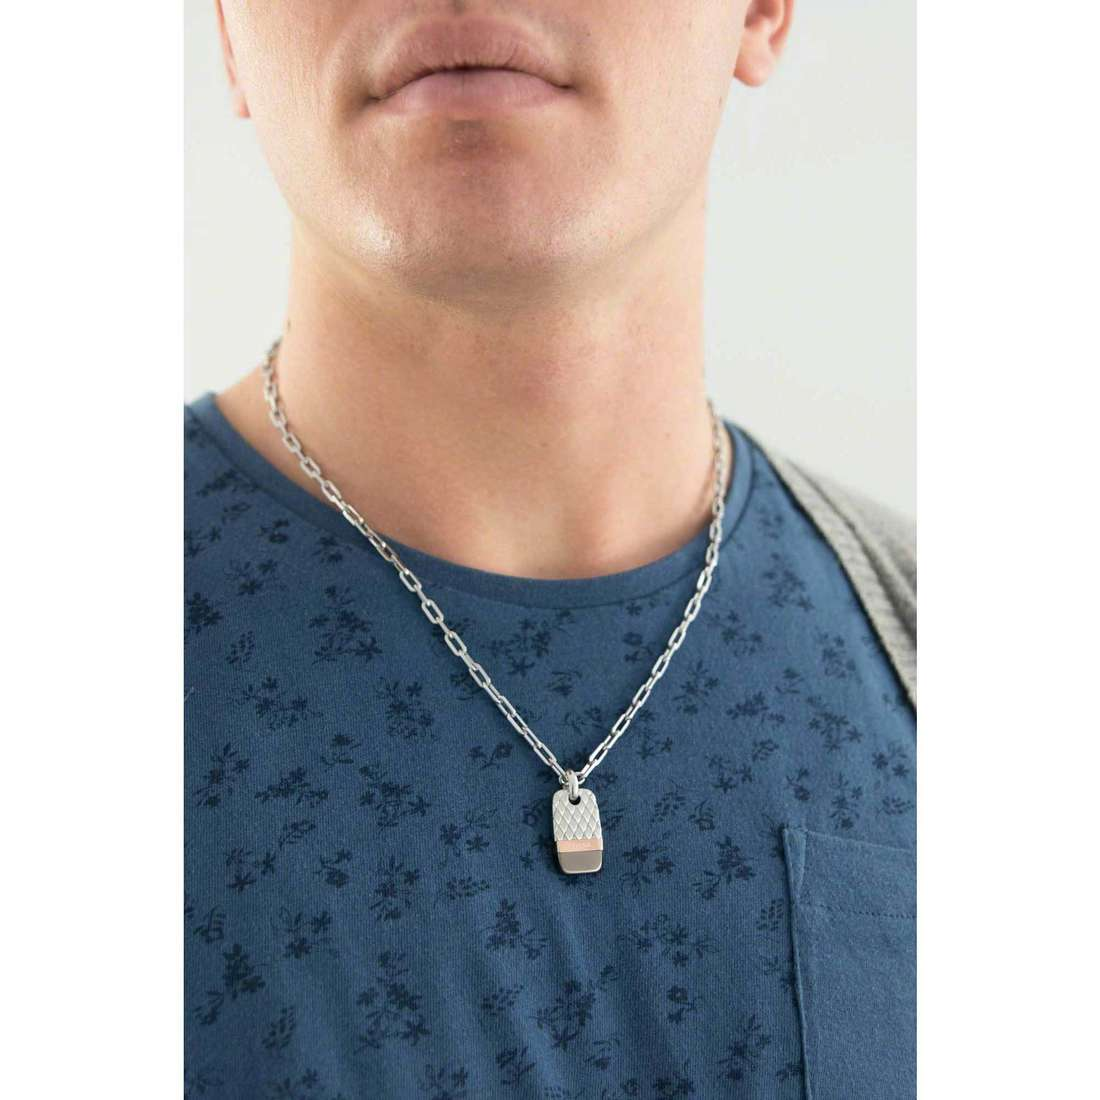 Fossil necklaces Holiday 15 man JF02084998 indosso